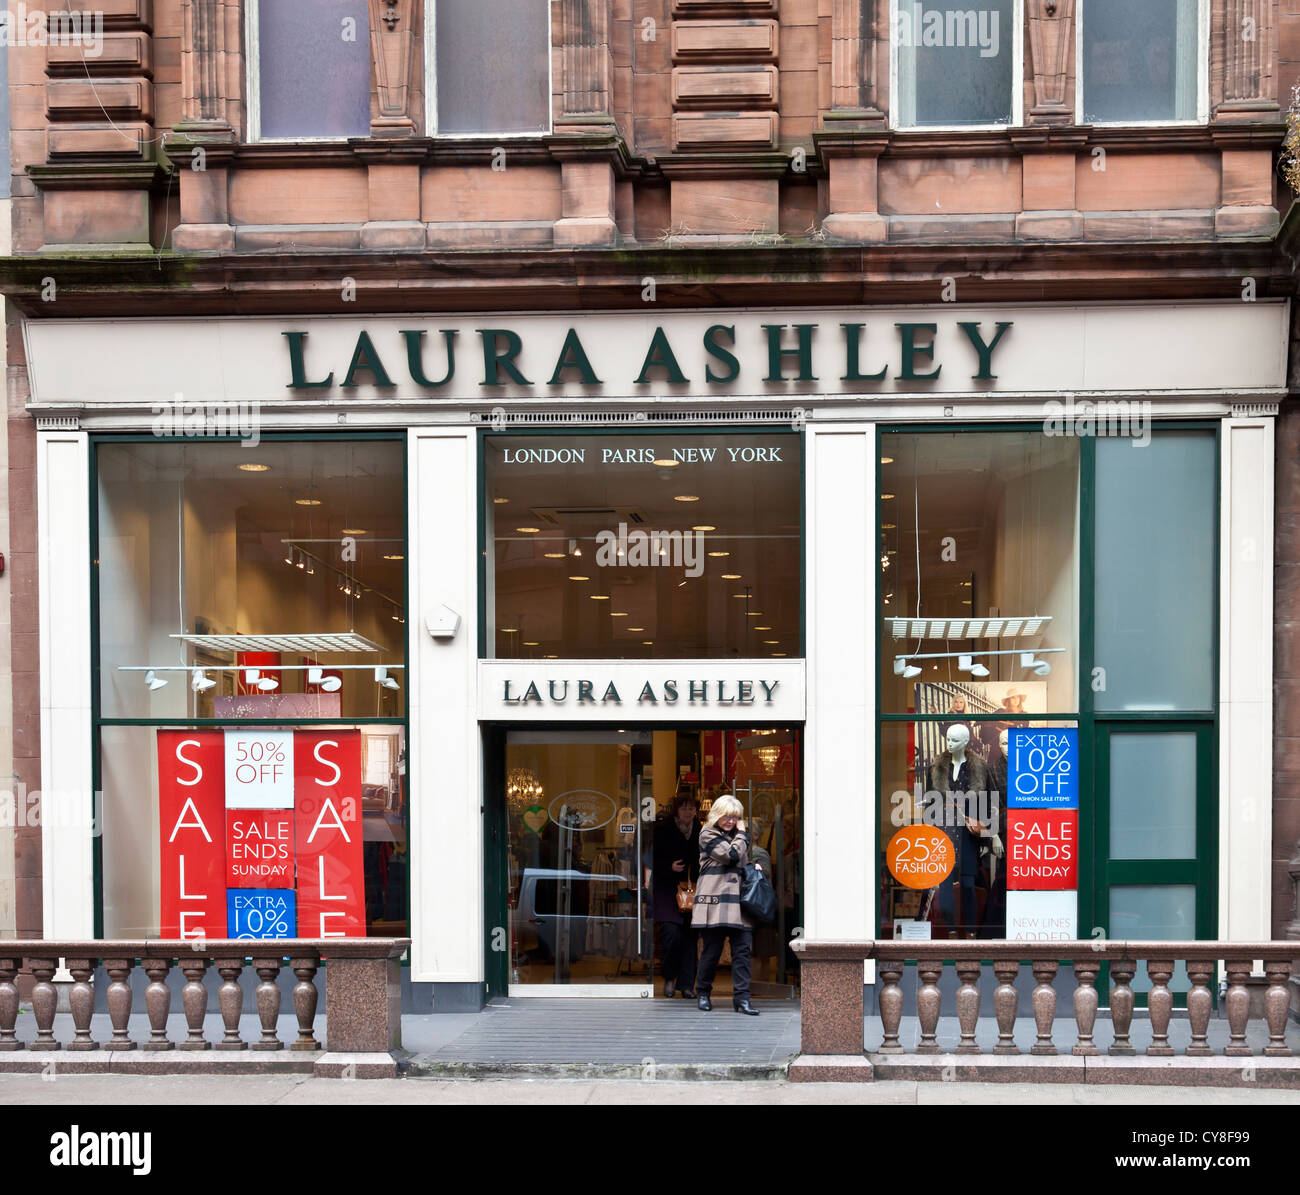 Frontage Of The Laura Ashley Fashion And Home Accessories Shop In Central Glasgow With Sale Signs In The Window